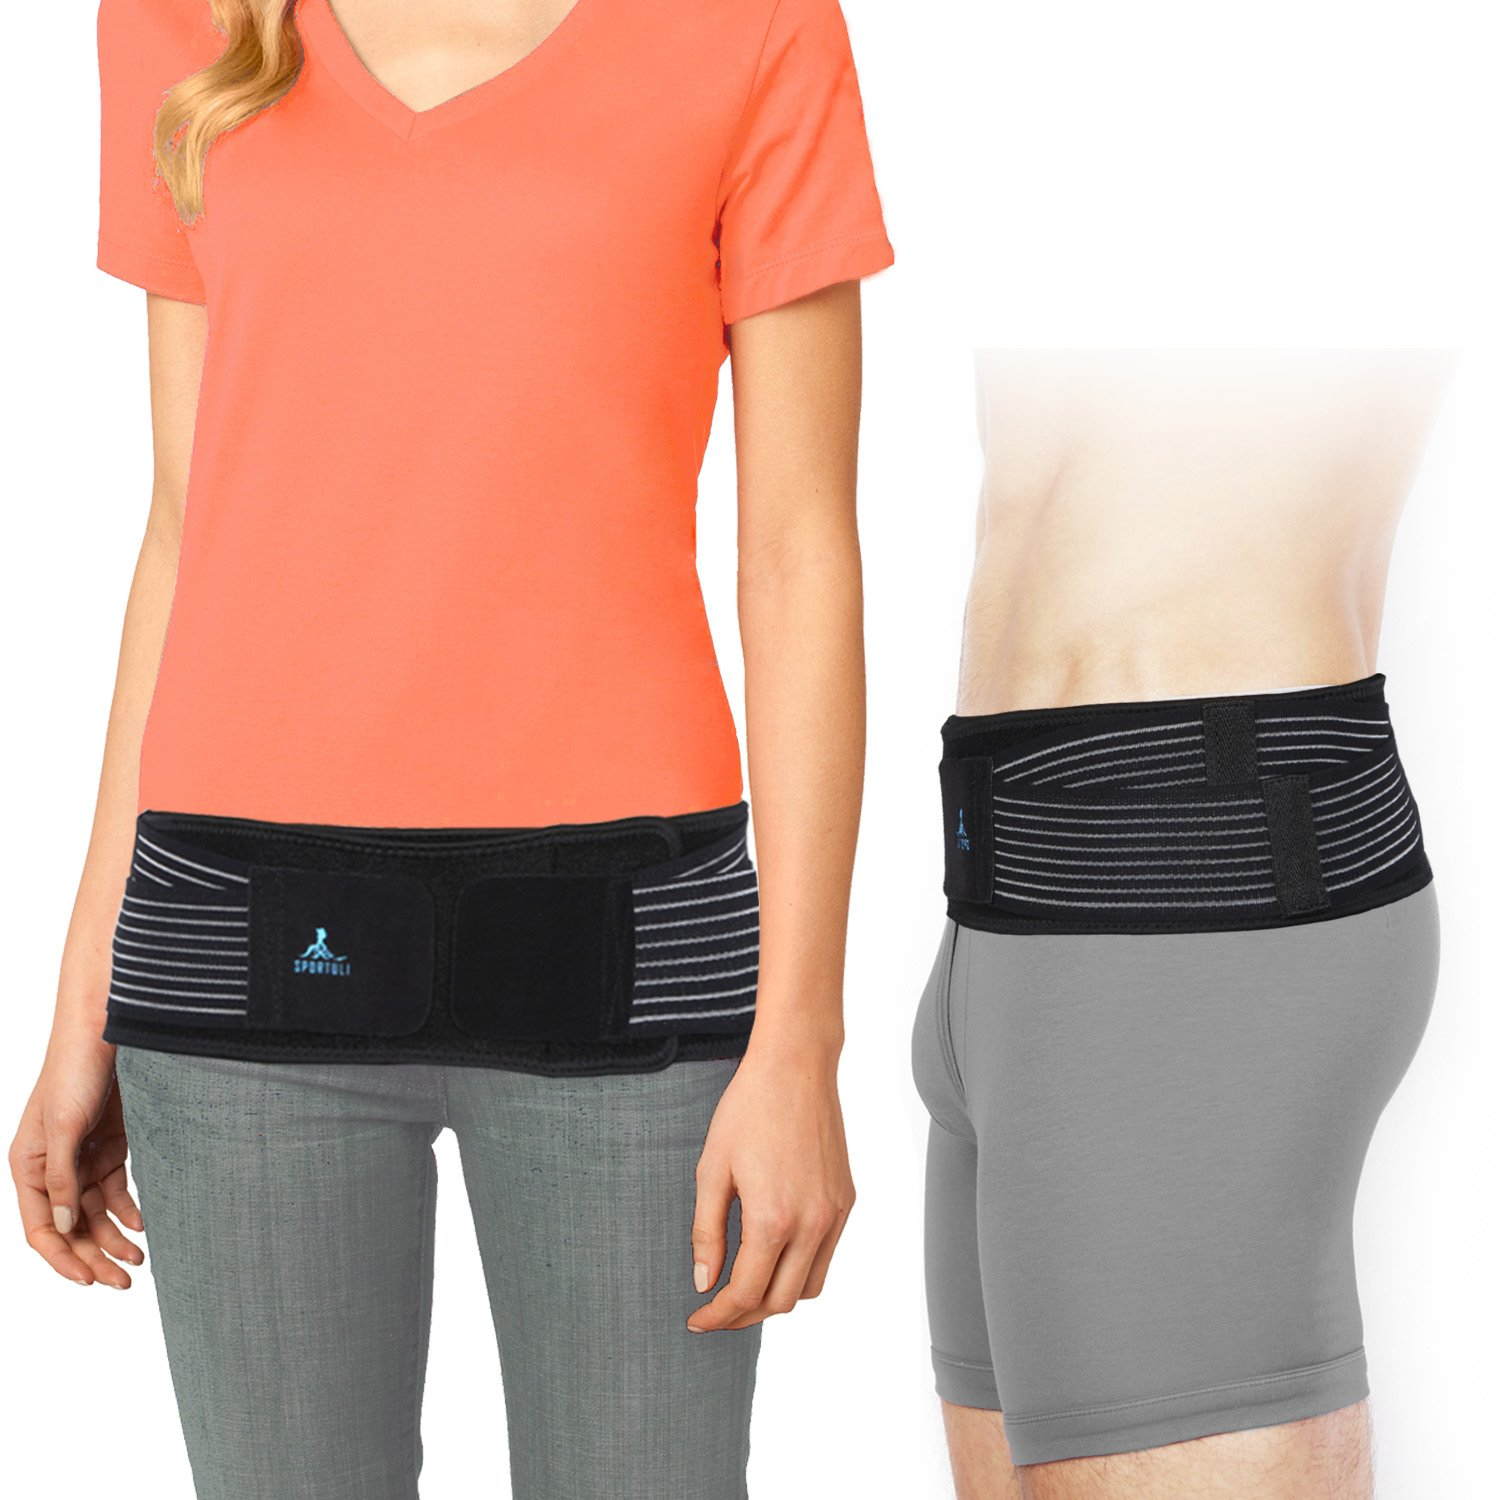 SI Joint Belt for Women and Men, Adjustable SI Belt for SI Joint Pain Relief, Sacroiliac Belt for Low Back Support Hip and Sciatica Pain, Diamond-Shaped Pressure Provides Compression and Stability